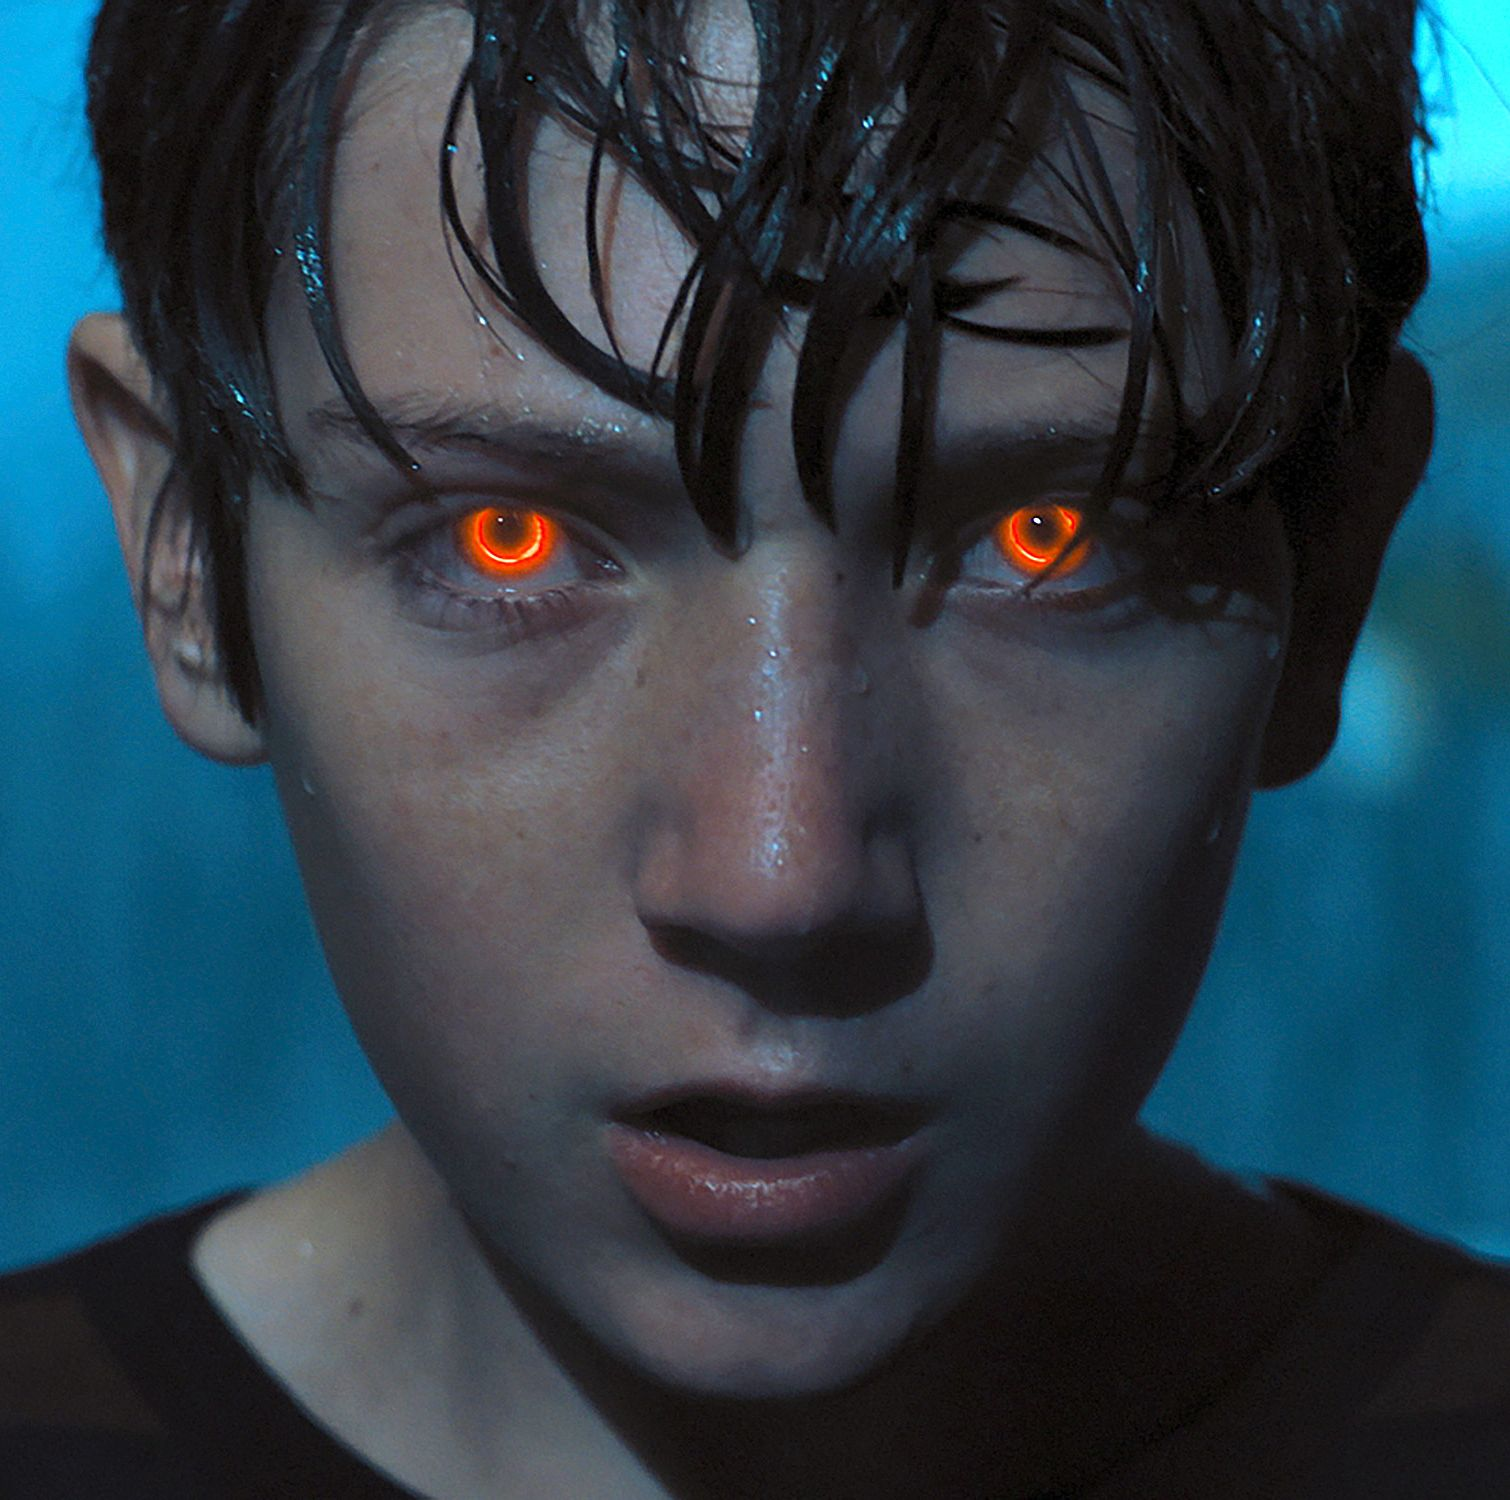 Does James Gunn's superhero horror Brightburn deliver the gory goods?